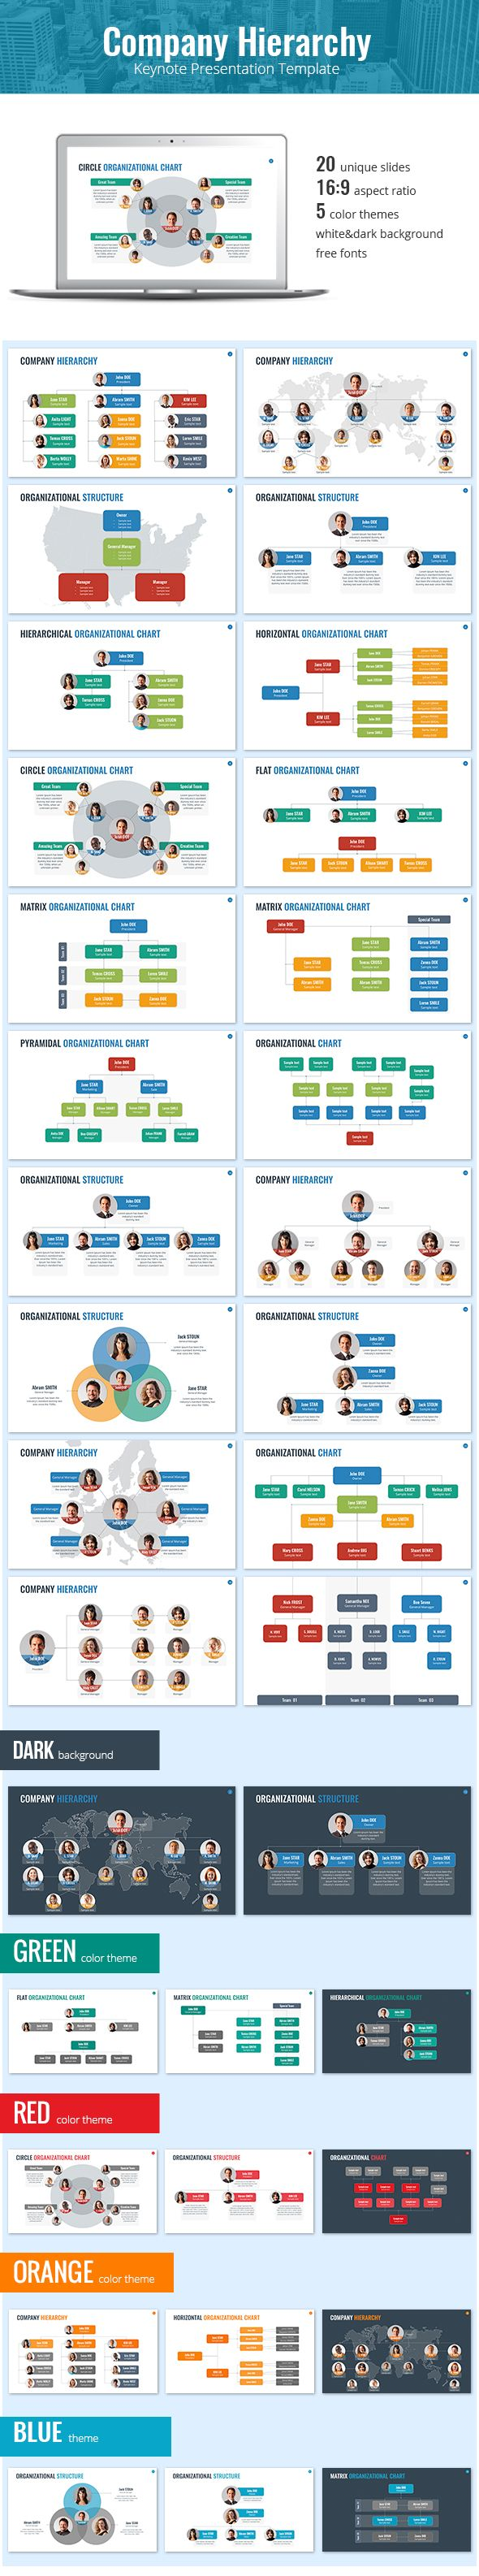 best ideas about organizational chart chart organizational chart and hierarchy keynote template